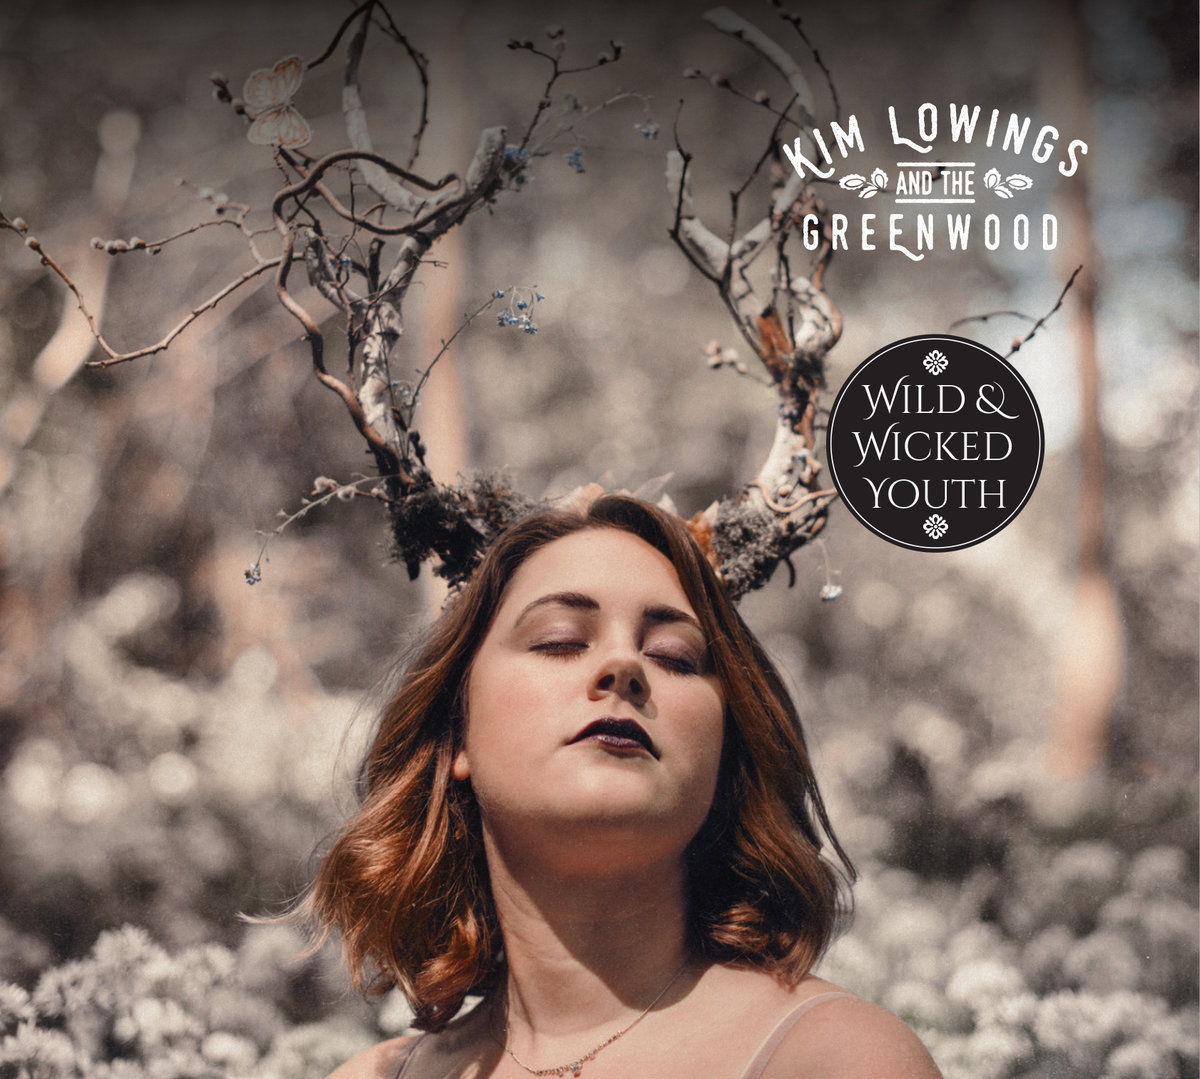 Kim Lowings & The Greenwood - Wild & Wicked Youth